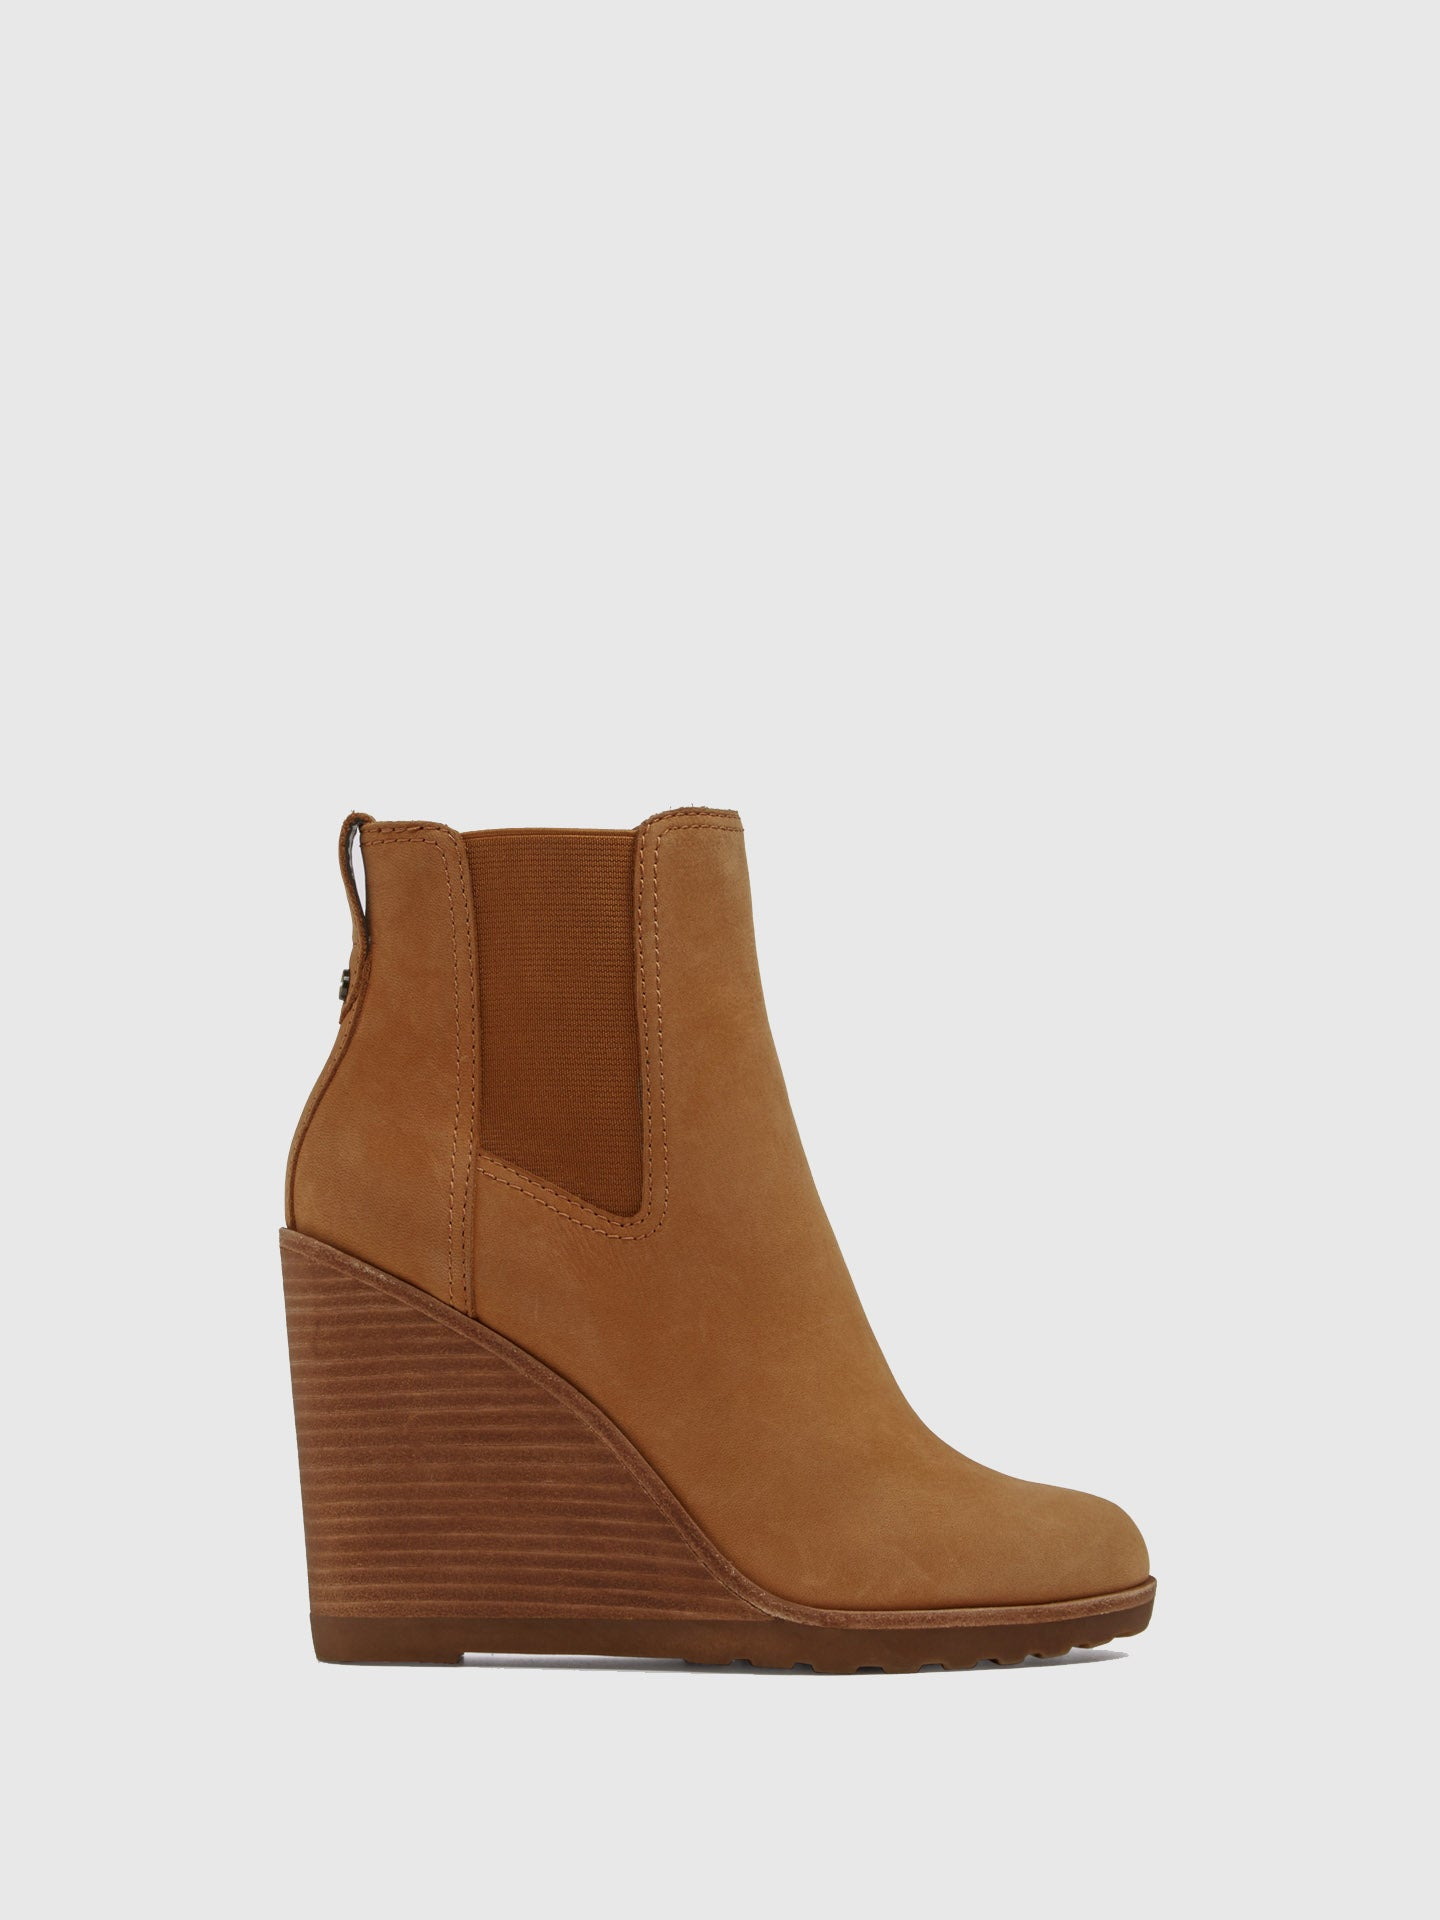 Aldo Brown Wedge Ankle Boots